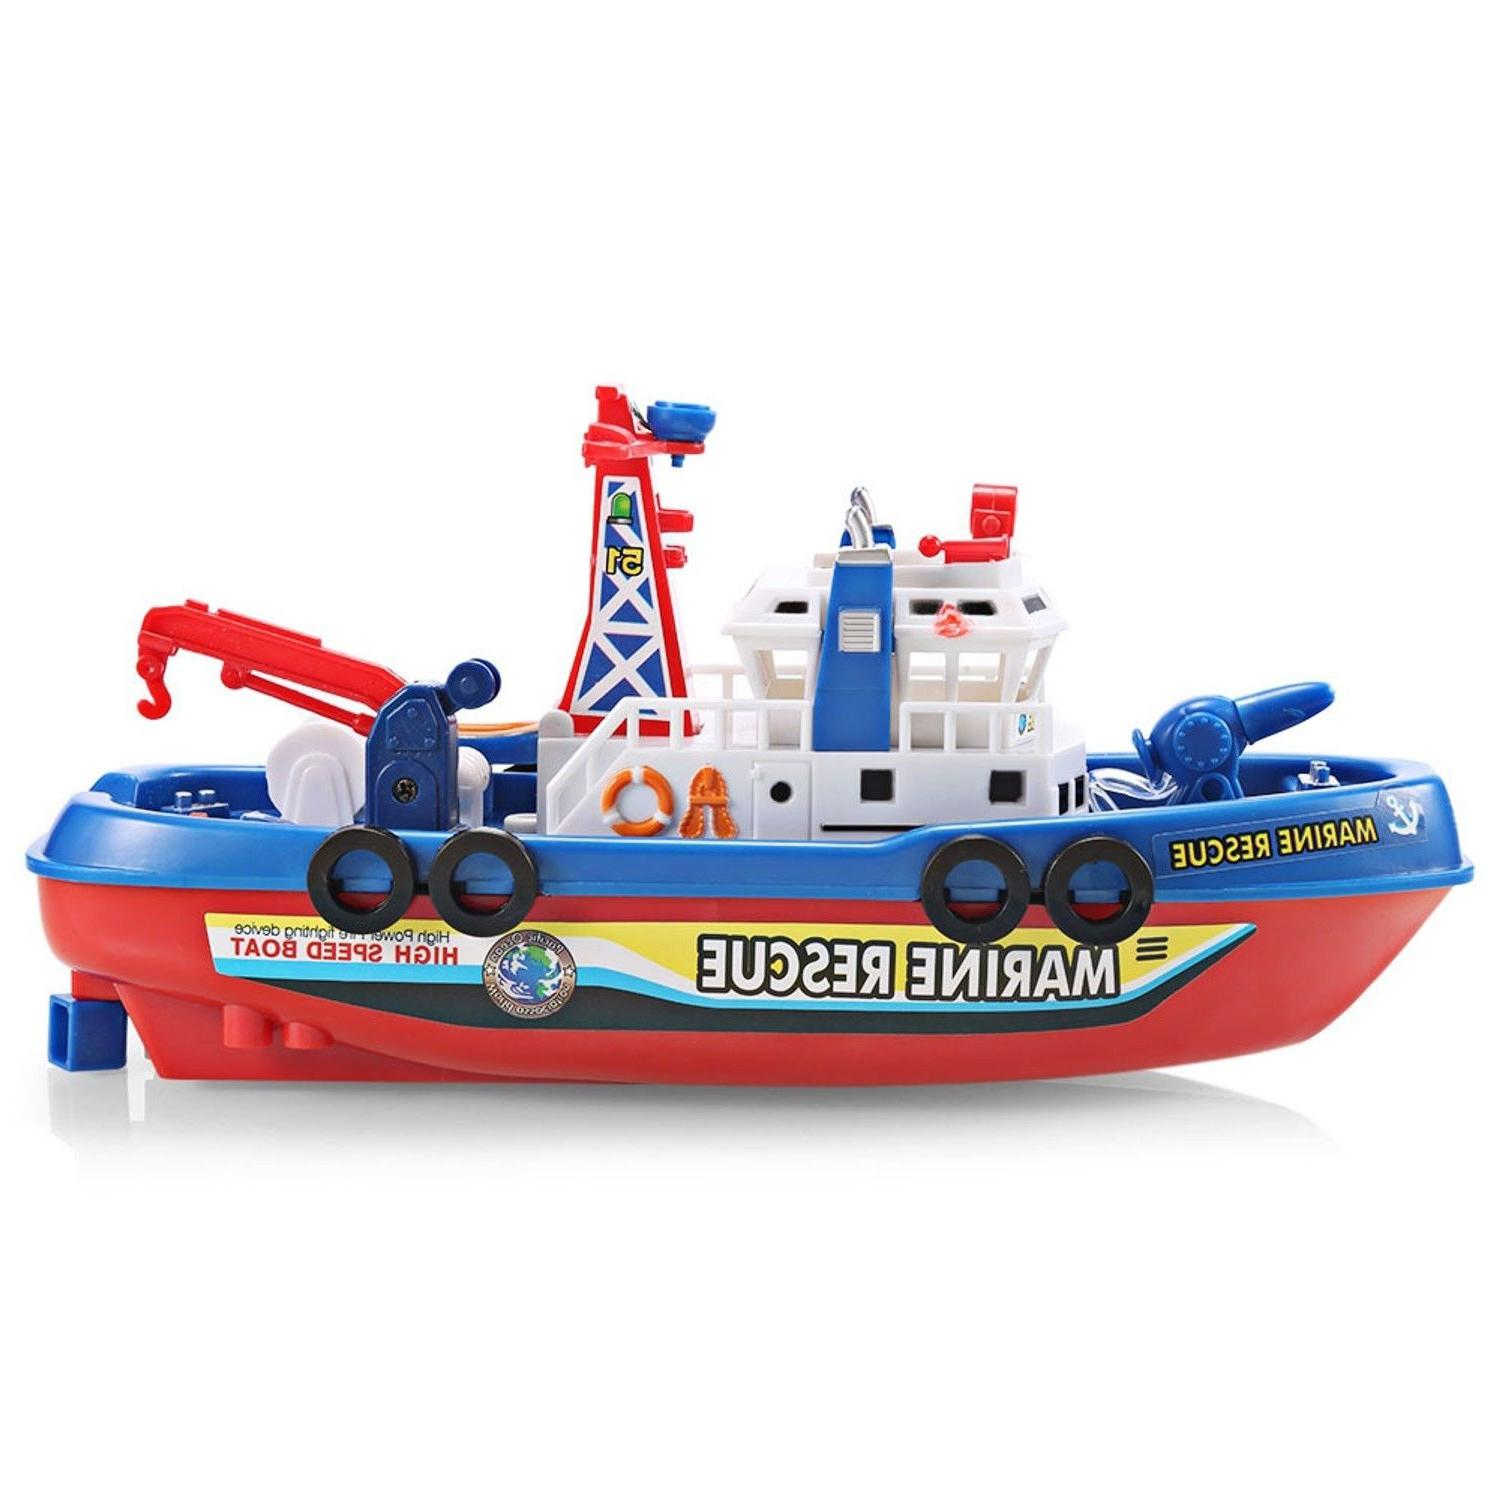 Electric Fire Boat Bath With US